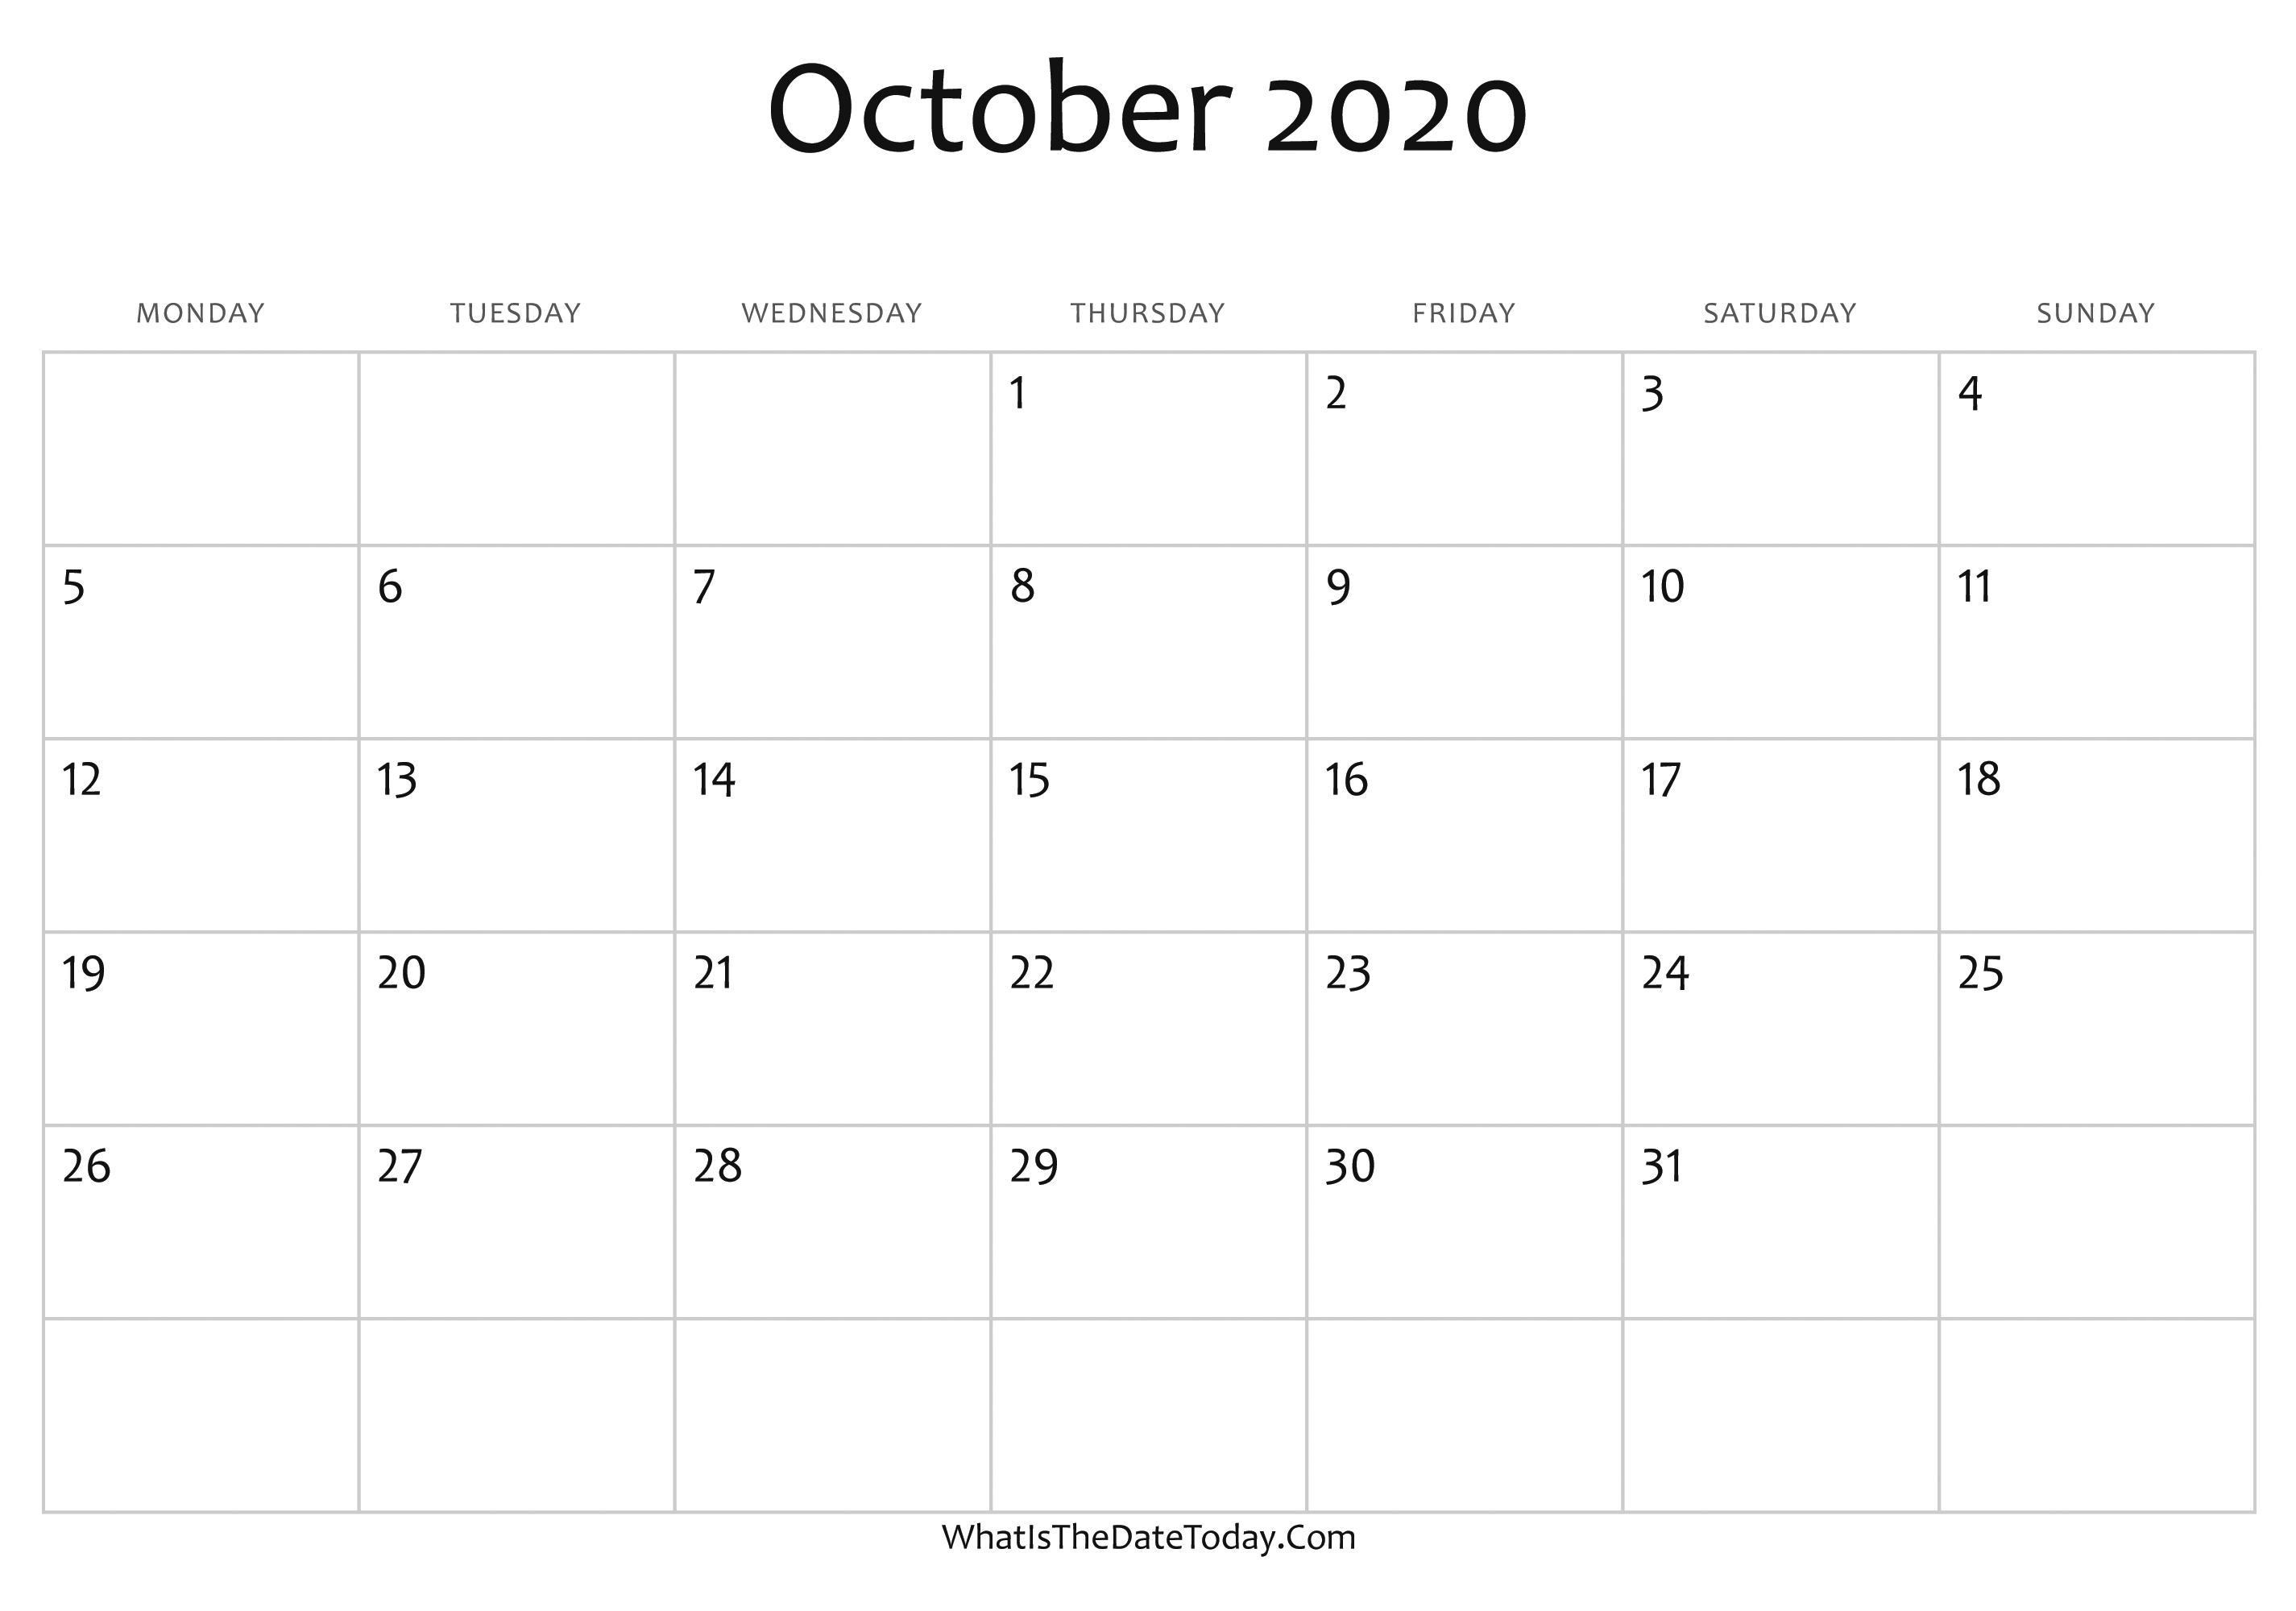 Calendar October 2020 Blank October Calendar 2020 Editable | Whatisthedatetoday.Com